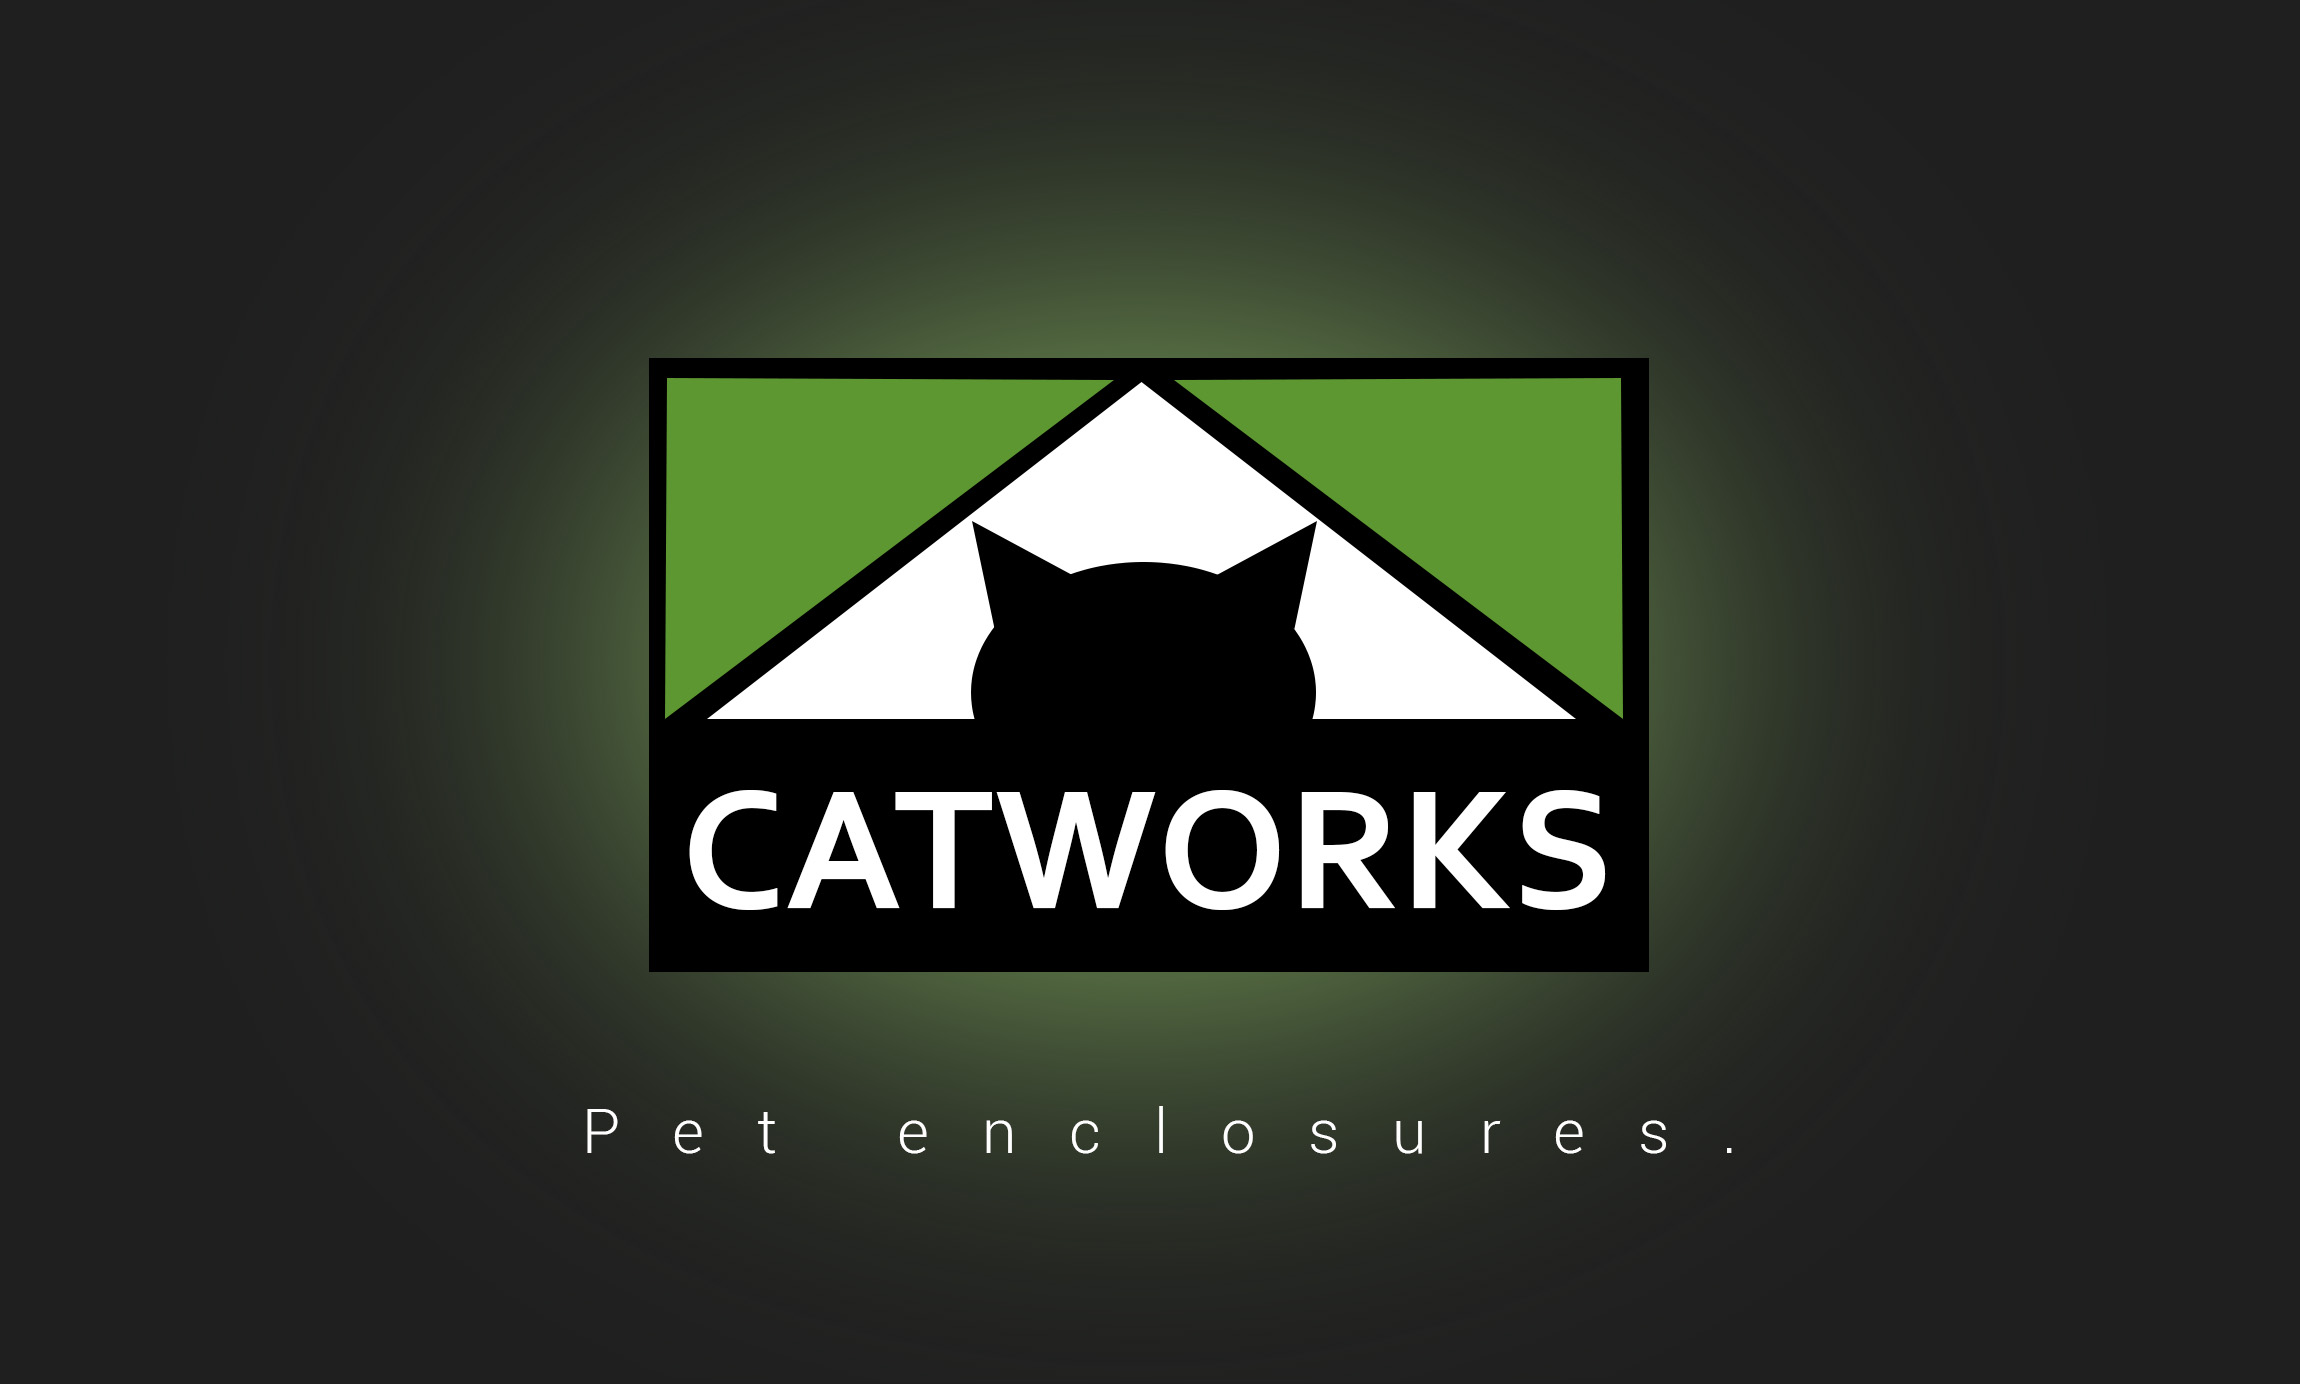 Catworks Cat Enclosures